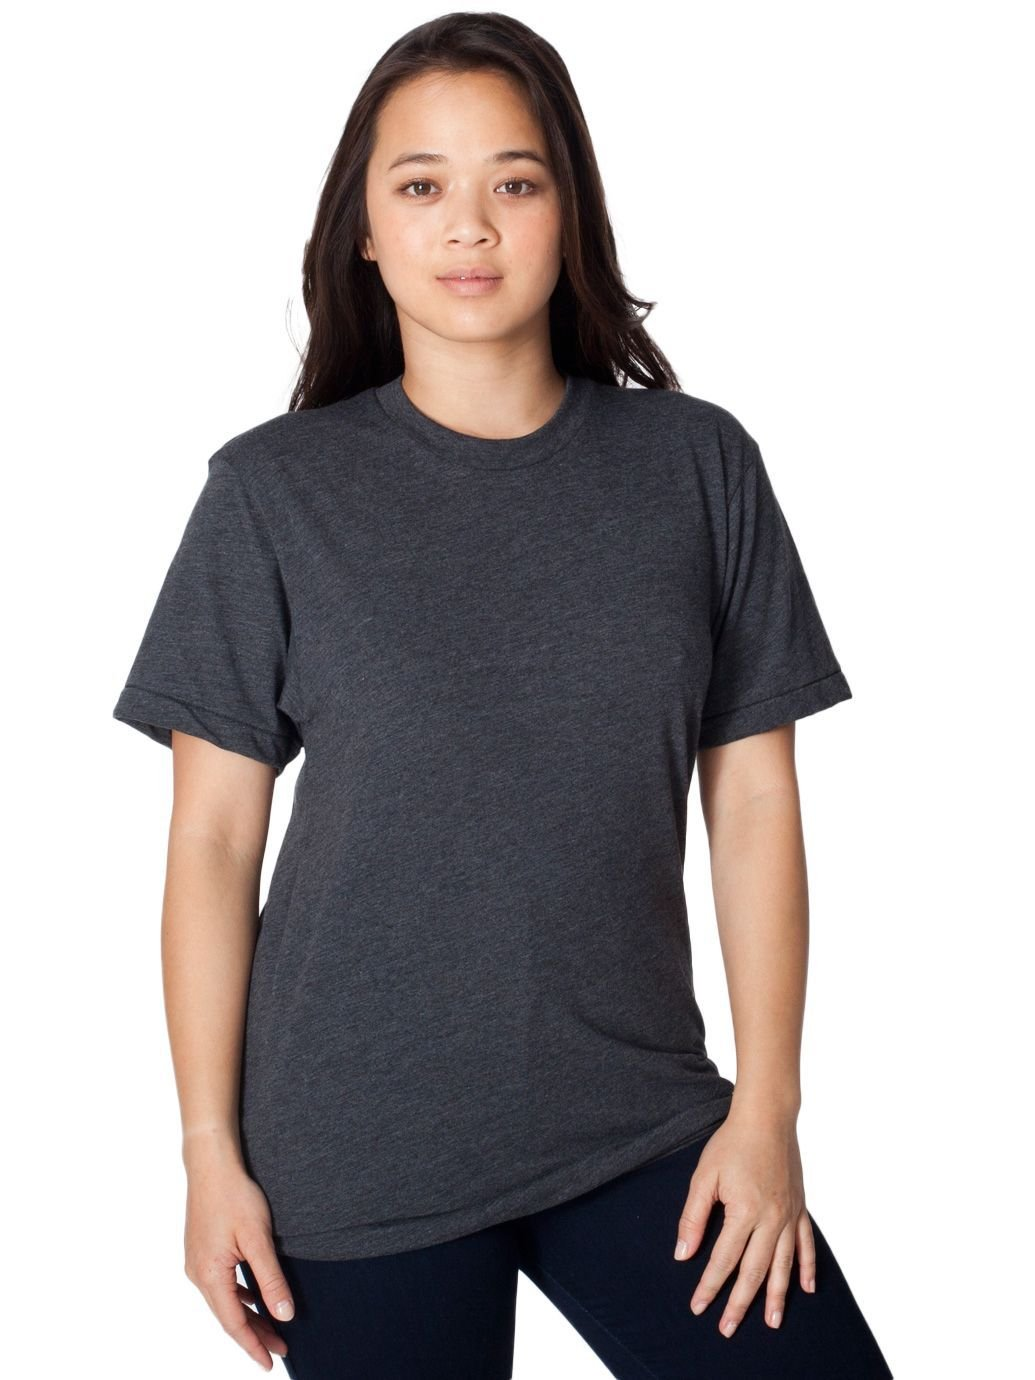 American Apparel Unisex 50/50 Heather/Black Short Sleeve T-shirt M